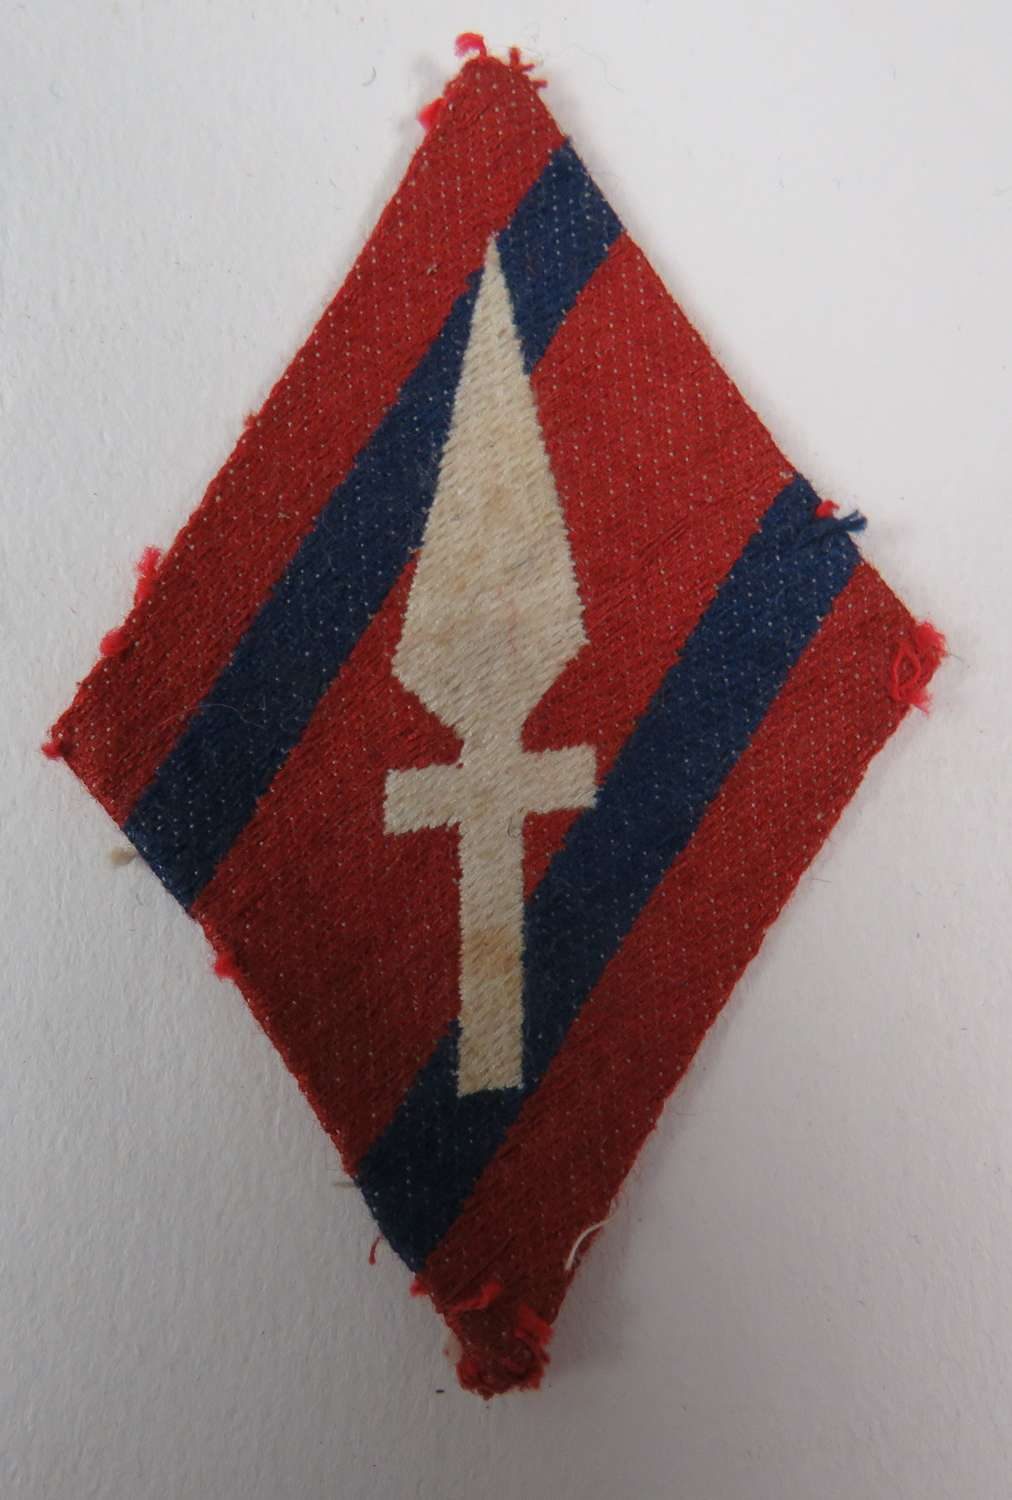 1st Corps Royal Engineers Formation Badge